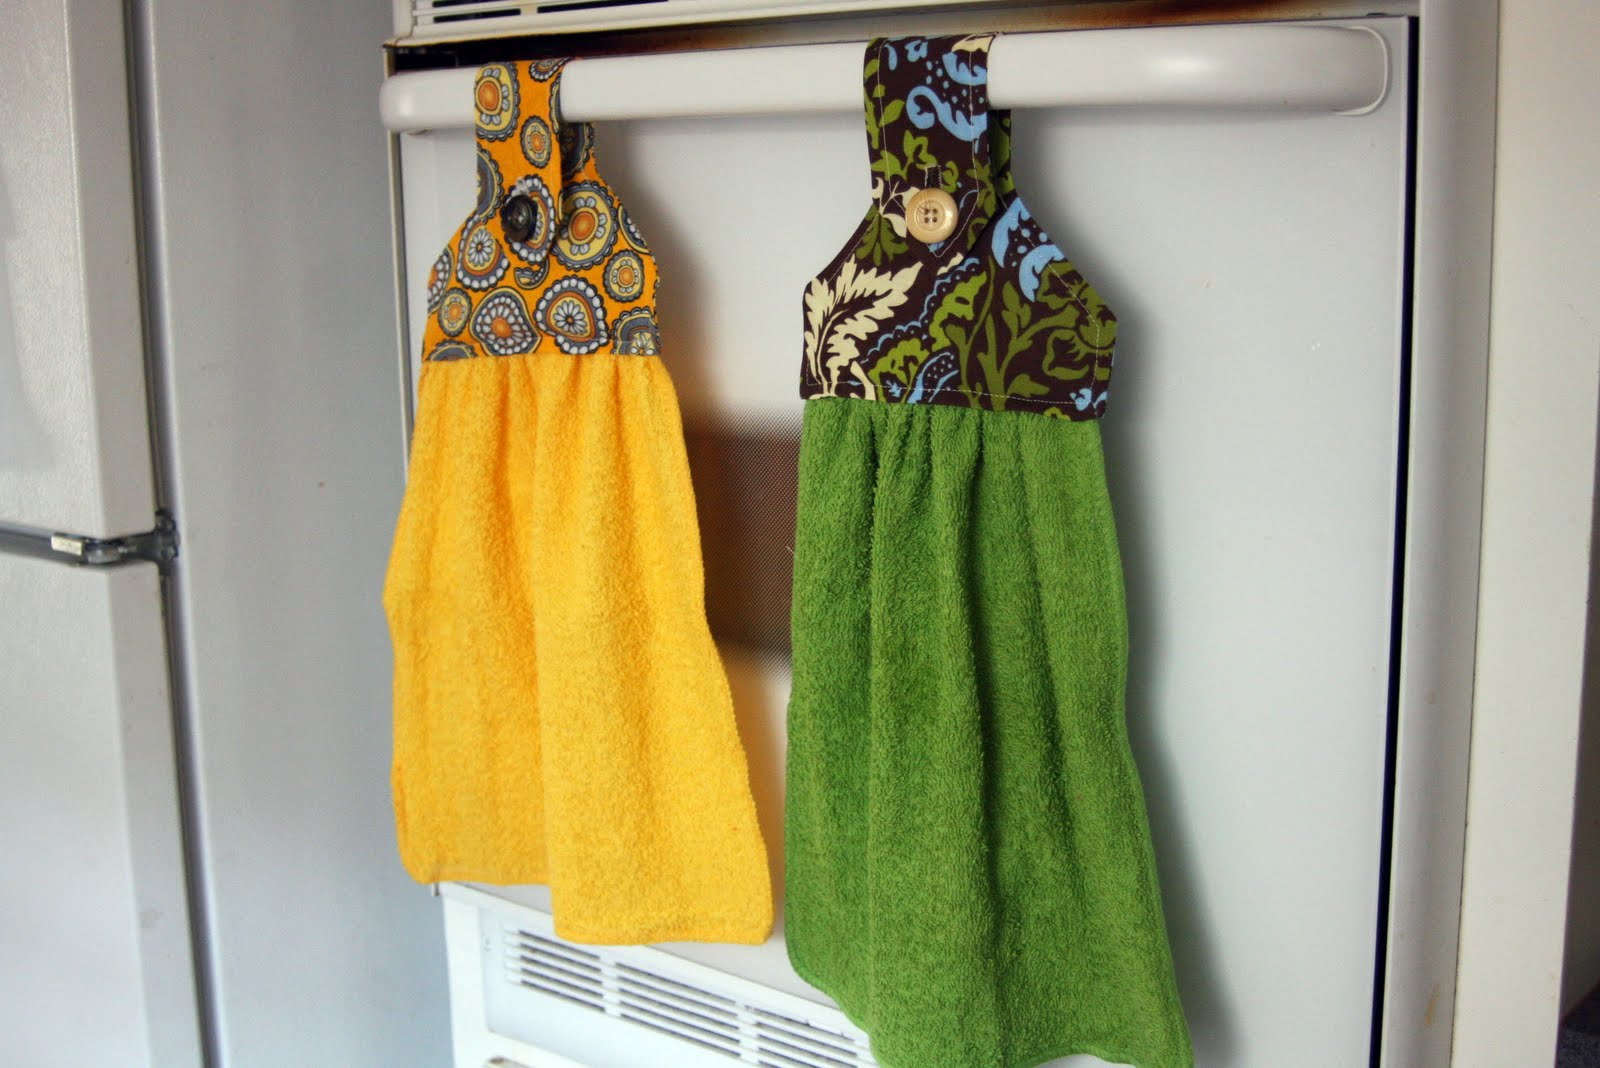 How to Crochet a Bath Towel - Yahoo! Voices - voices.yahoo.com